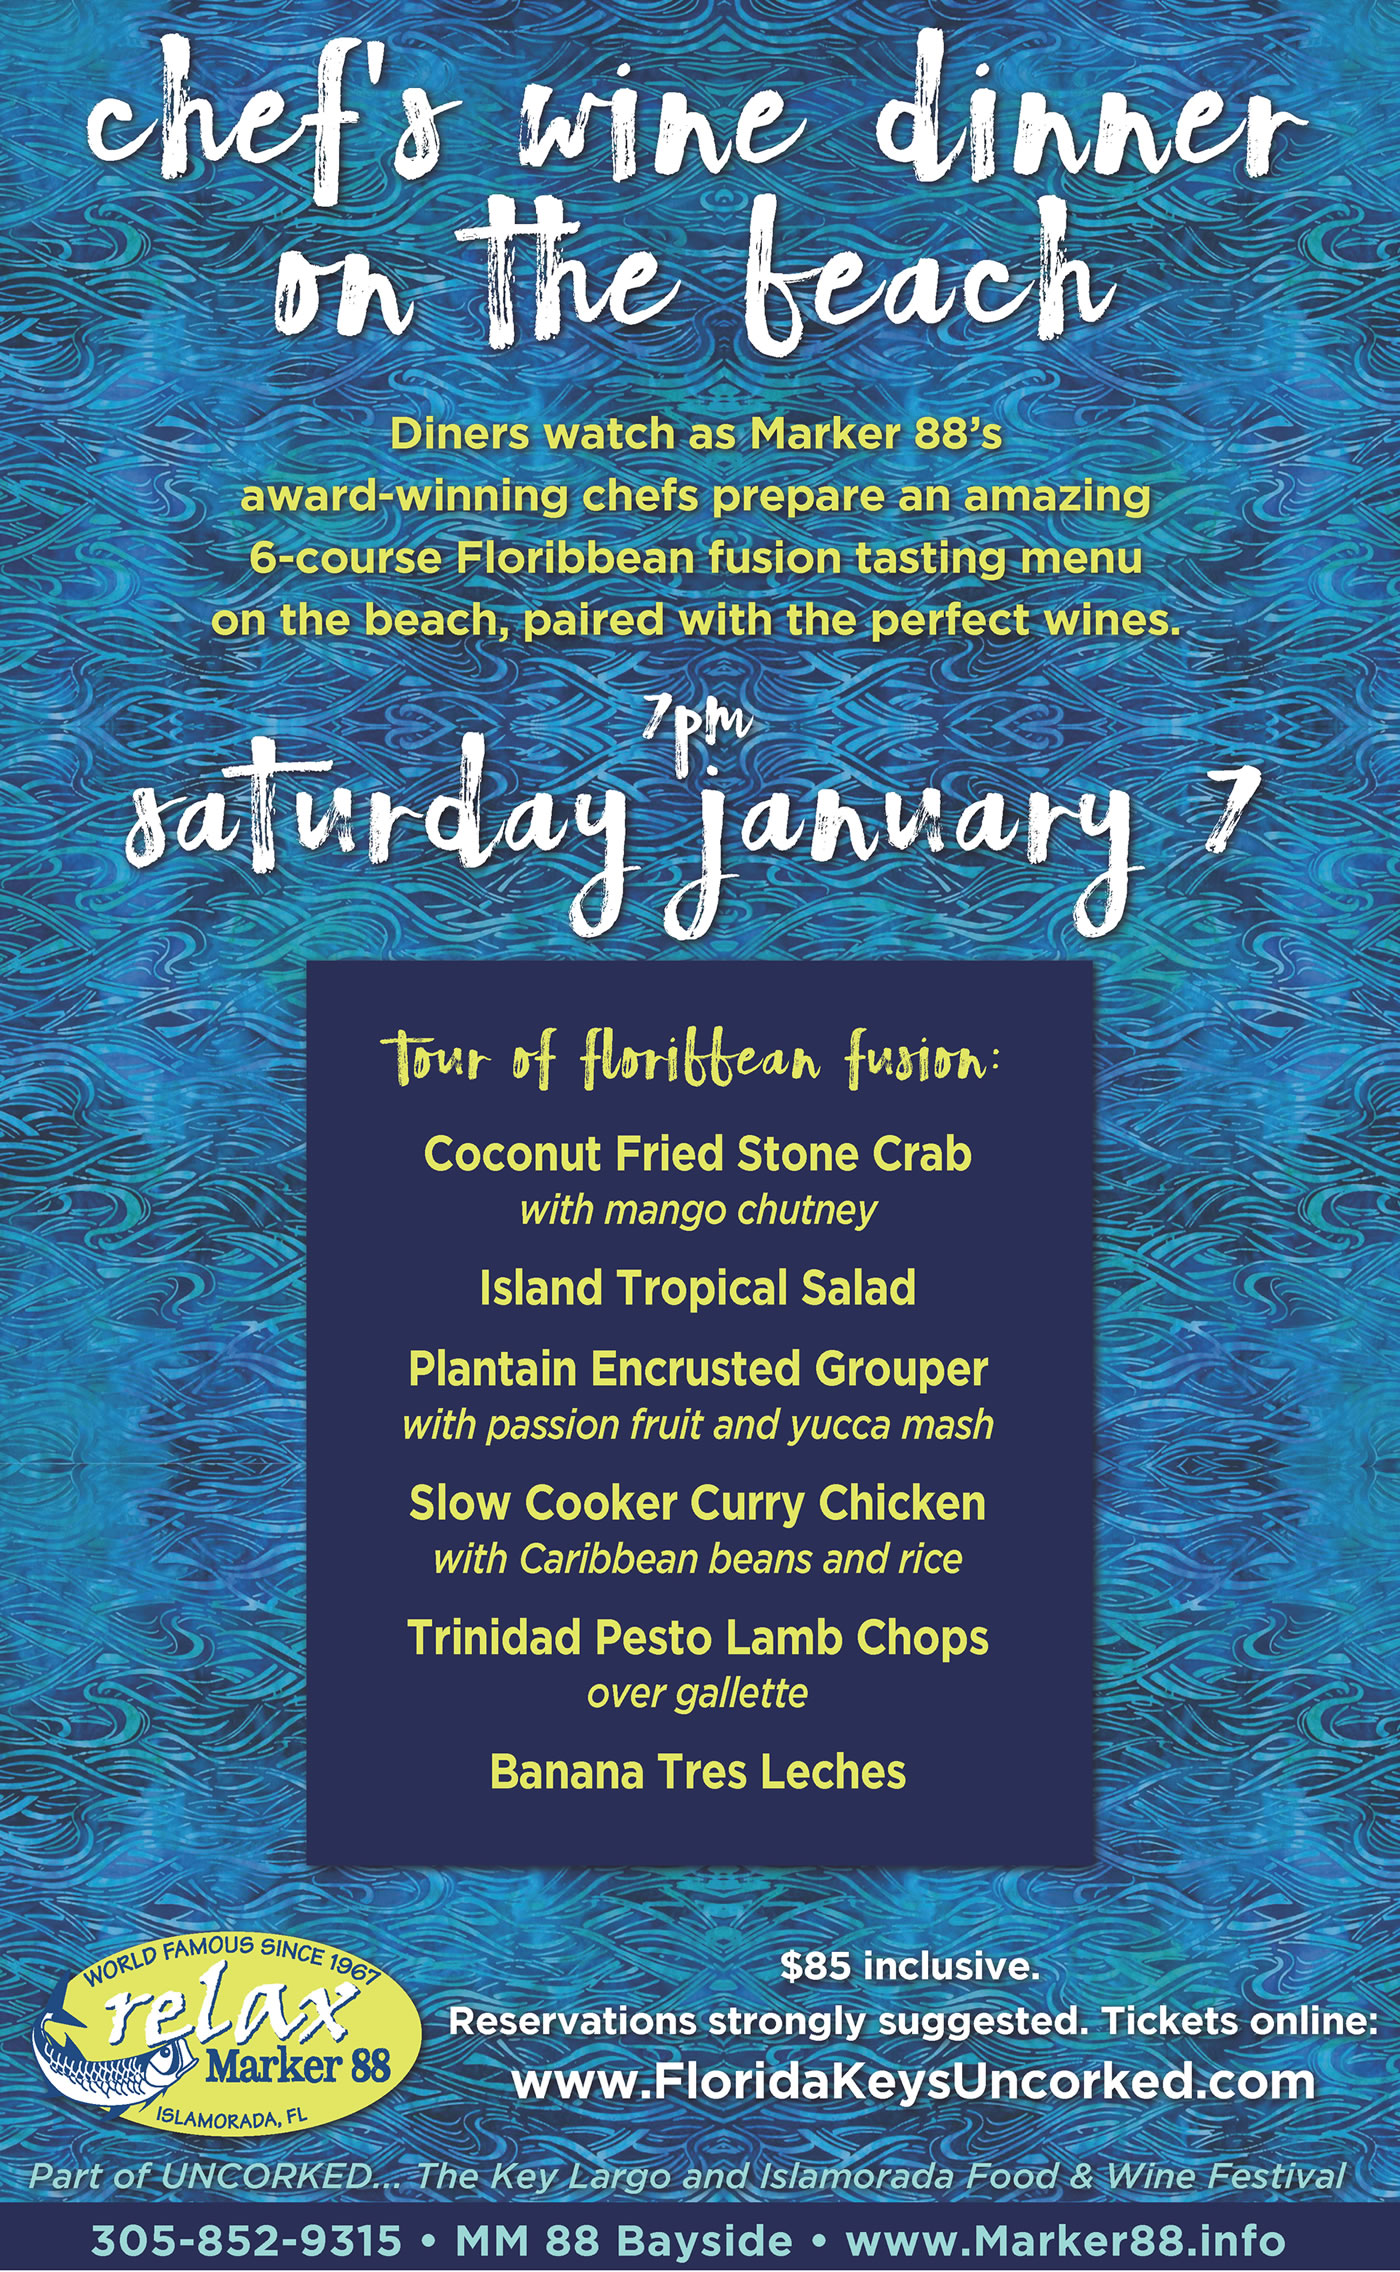 2017 event schedule key largo uncorked food and wine festival